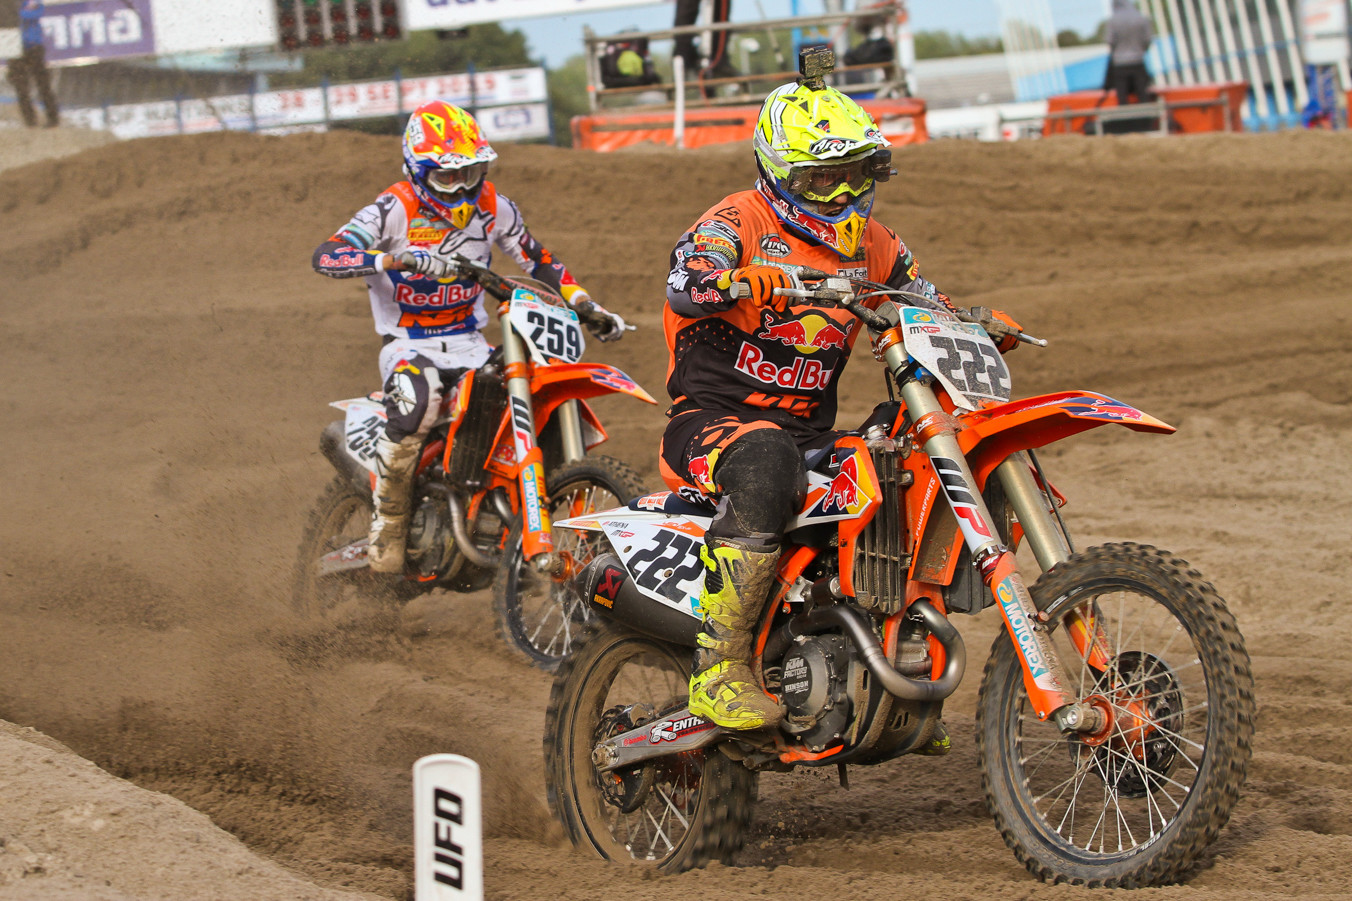 Glenn Coldenhoff was one of only two riders that really saw Antonio Cairoli or Jeffrey Herlings for long.